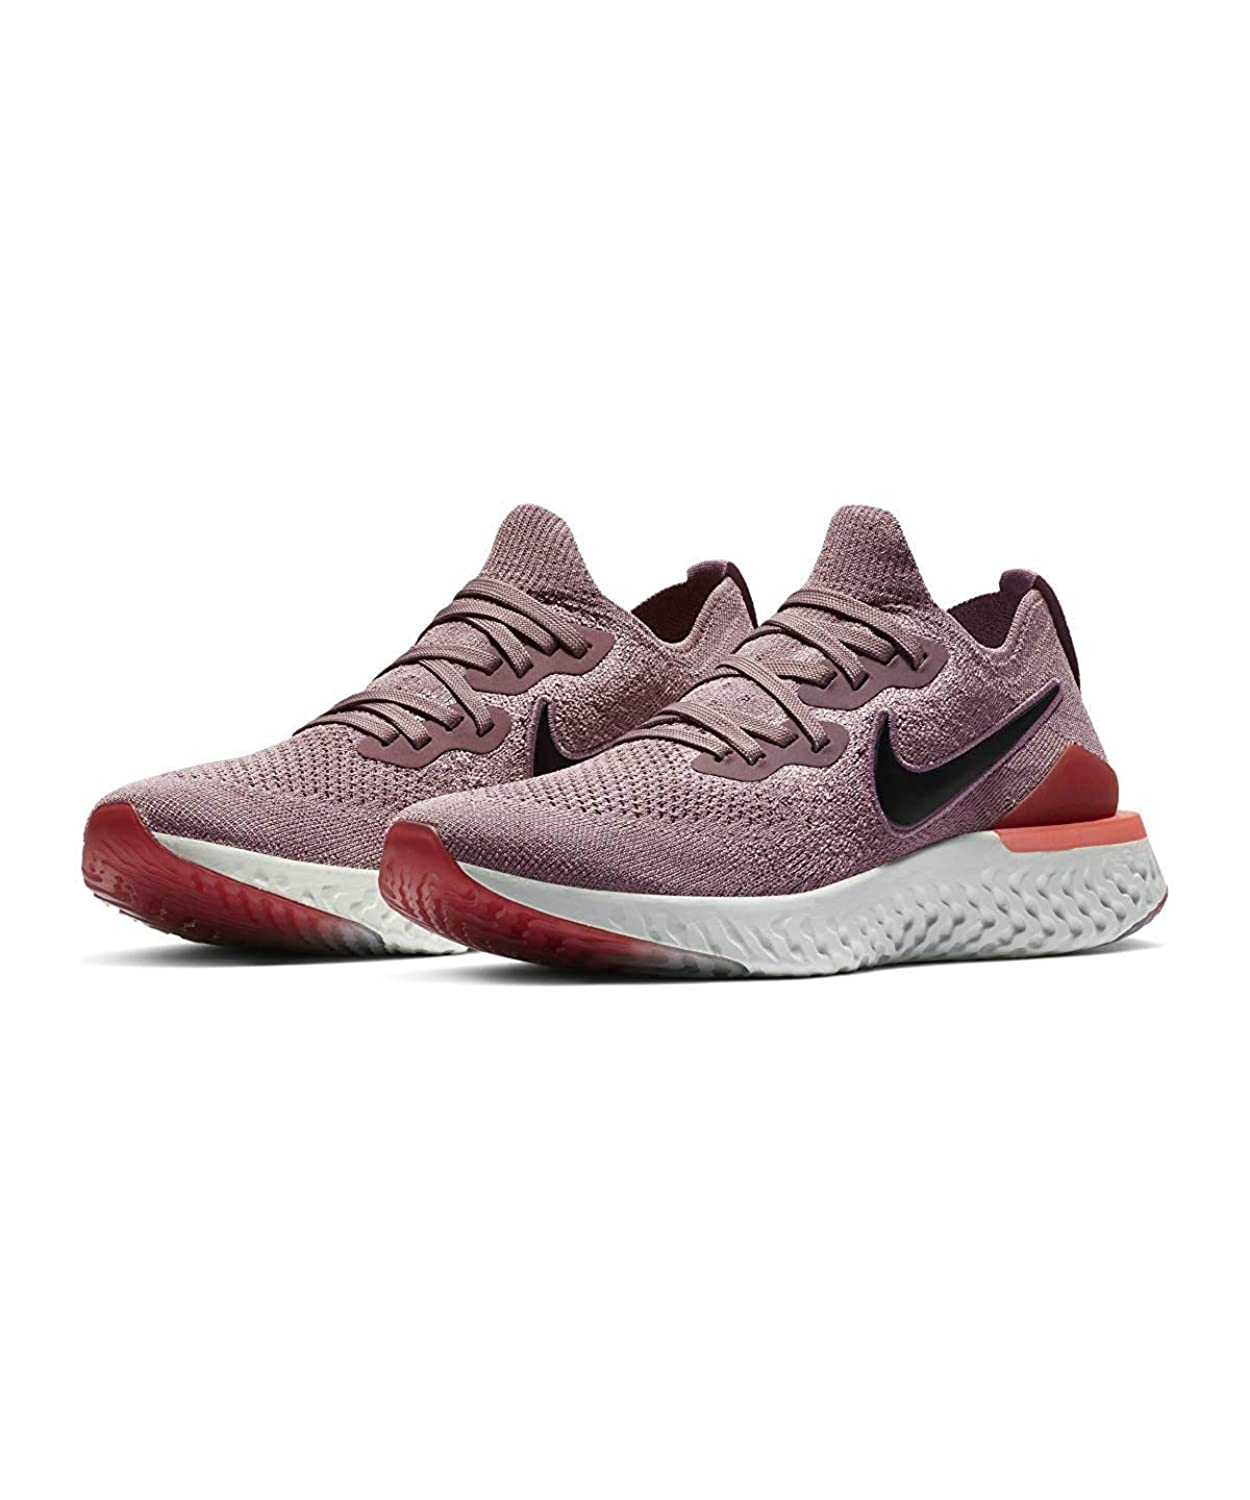 Nike W Epic React Flyknit 2 [BQ8927-500] Women Running Shoes Plum Dust/Black/US 9.0